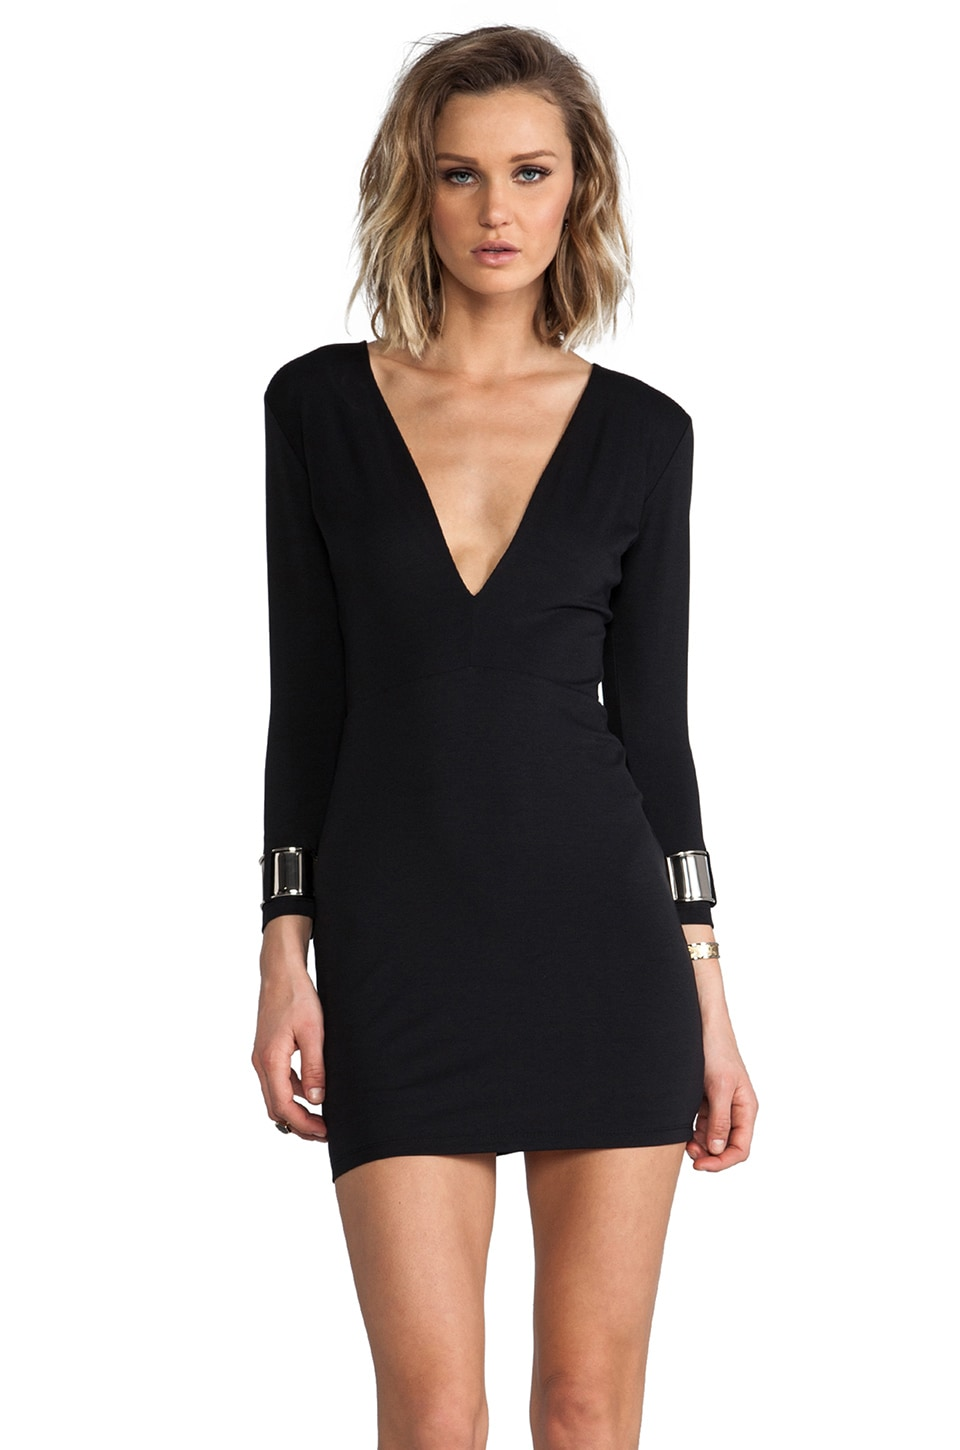 BEC&BRIDGE Exclusive Jaguar Long Sleeve Cuff Dress in Black